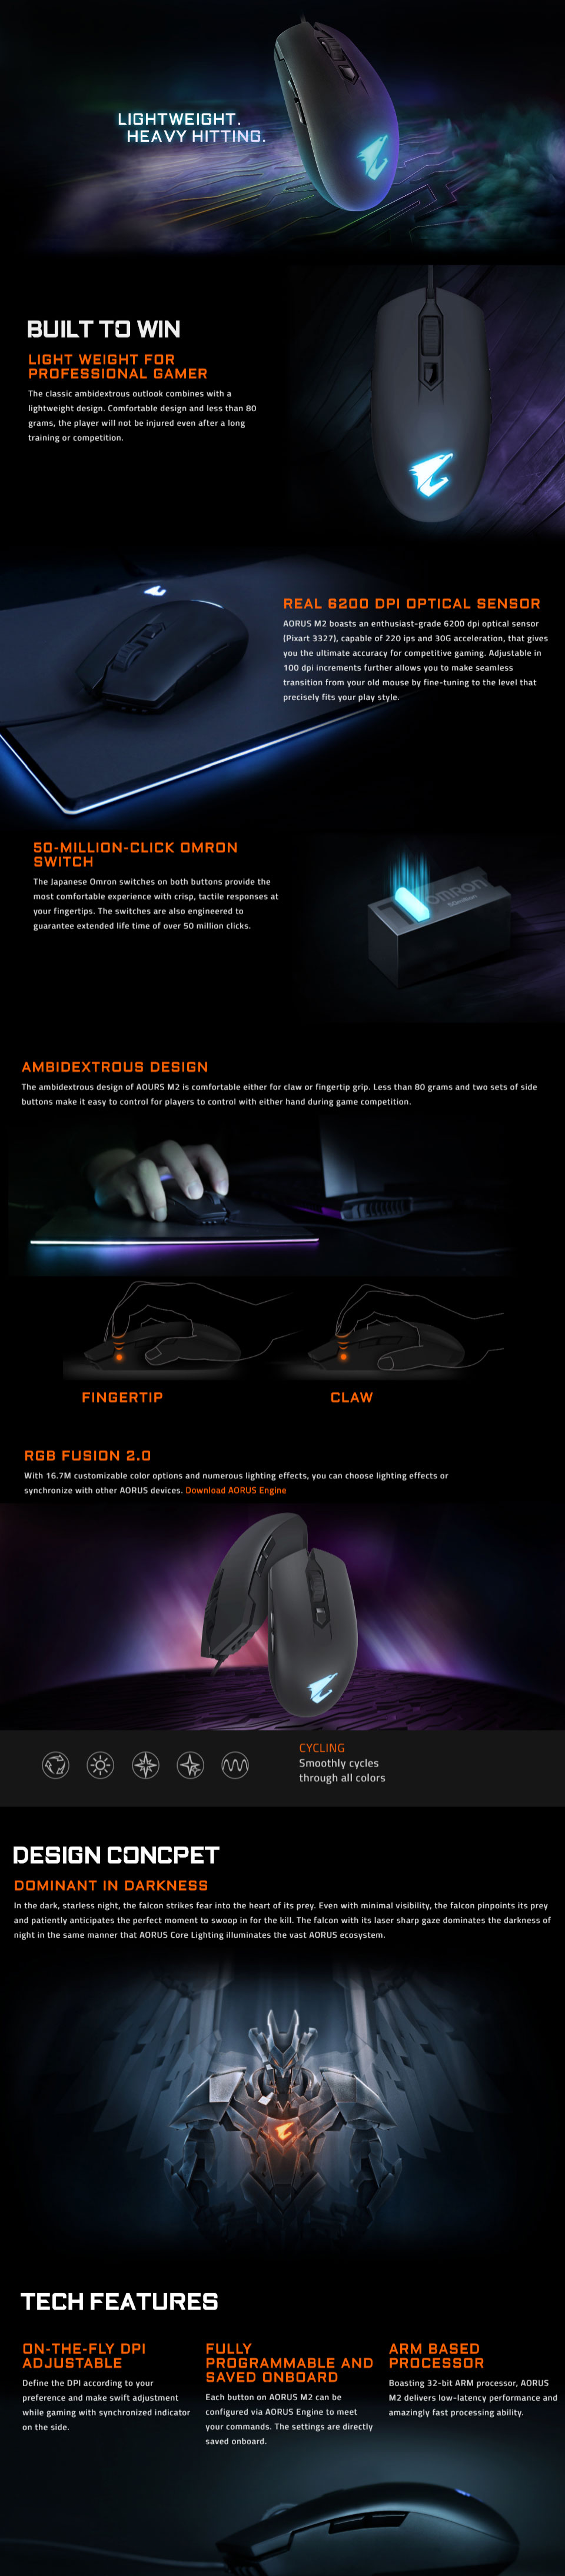 e35755aefc9 ... RGB Fusion 2.0 allowing you to synchronise with other AORUS devices, an  ambidextrous design developed for palm and claw grips, two thumb buttons on  both ...